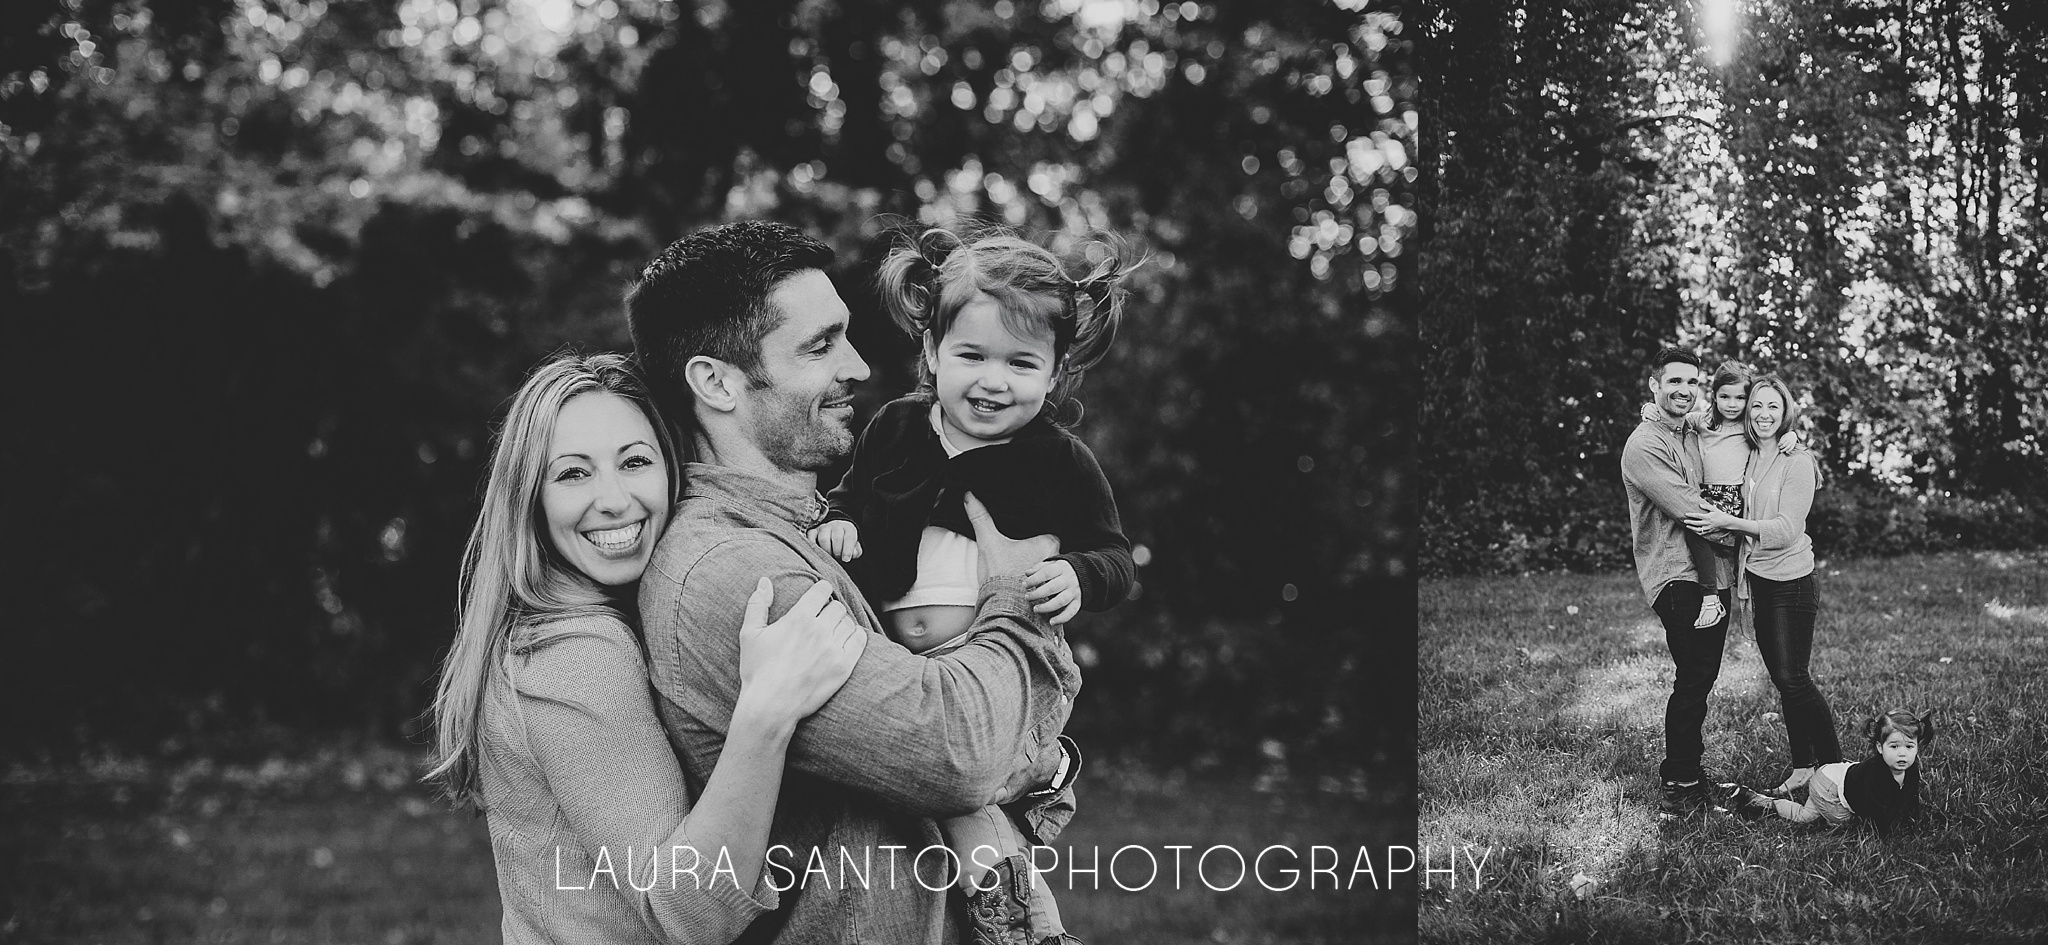 Laura Santos Photography Portland Oregon Family Photographer_0086.jpg